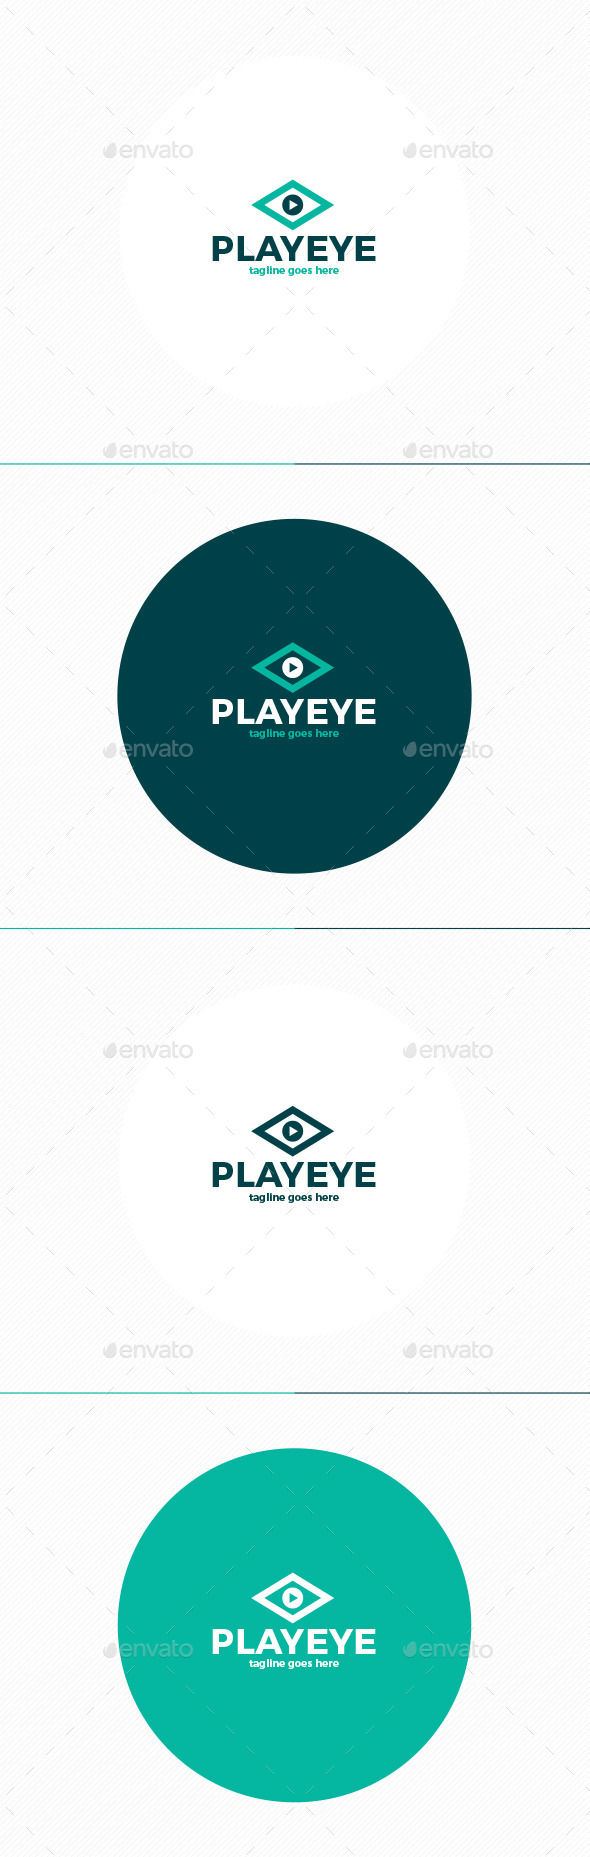 Play Eye Logo - Vector Abstract